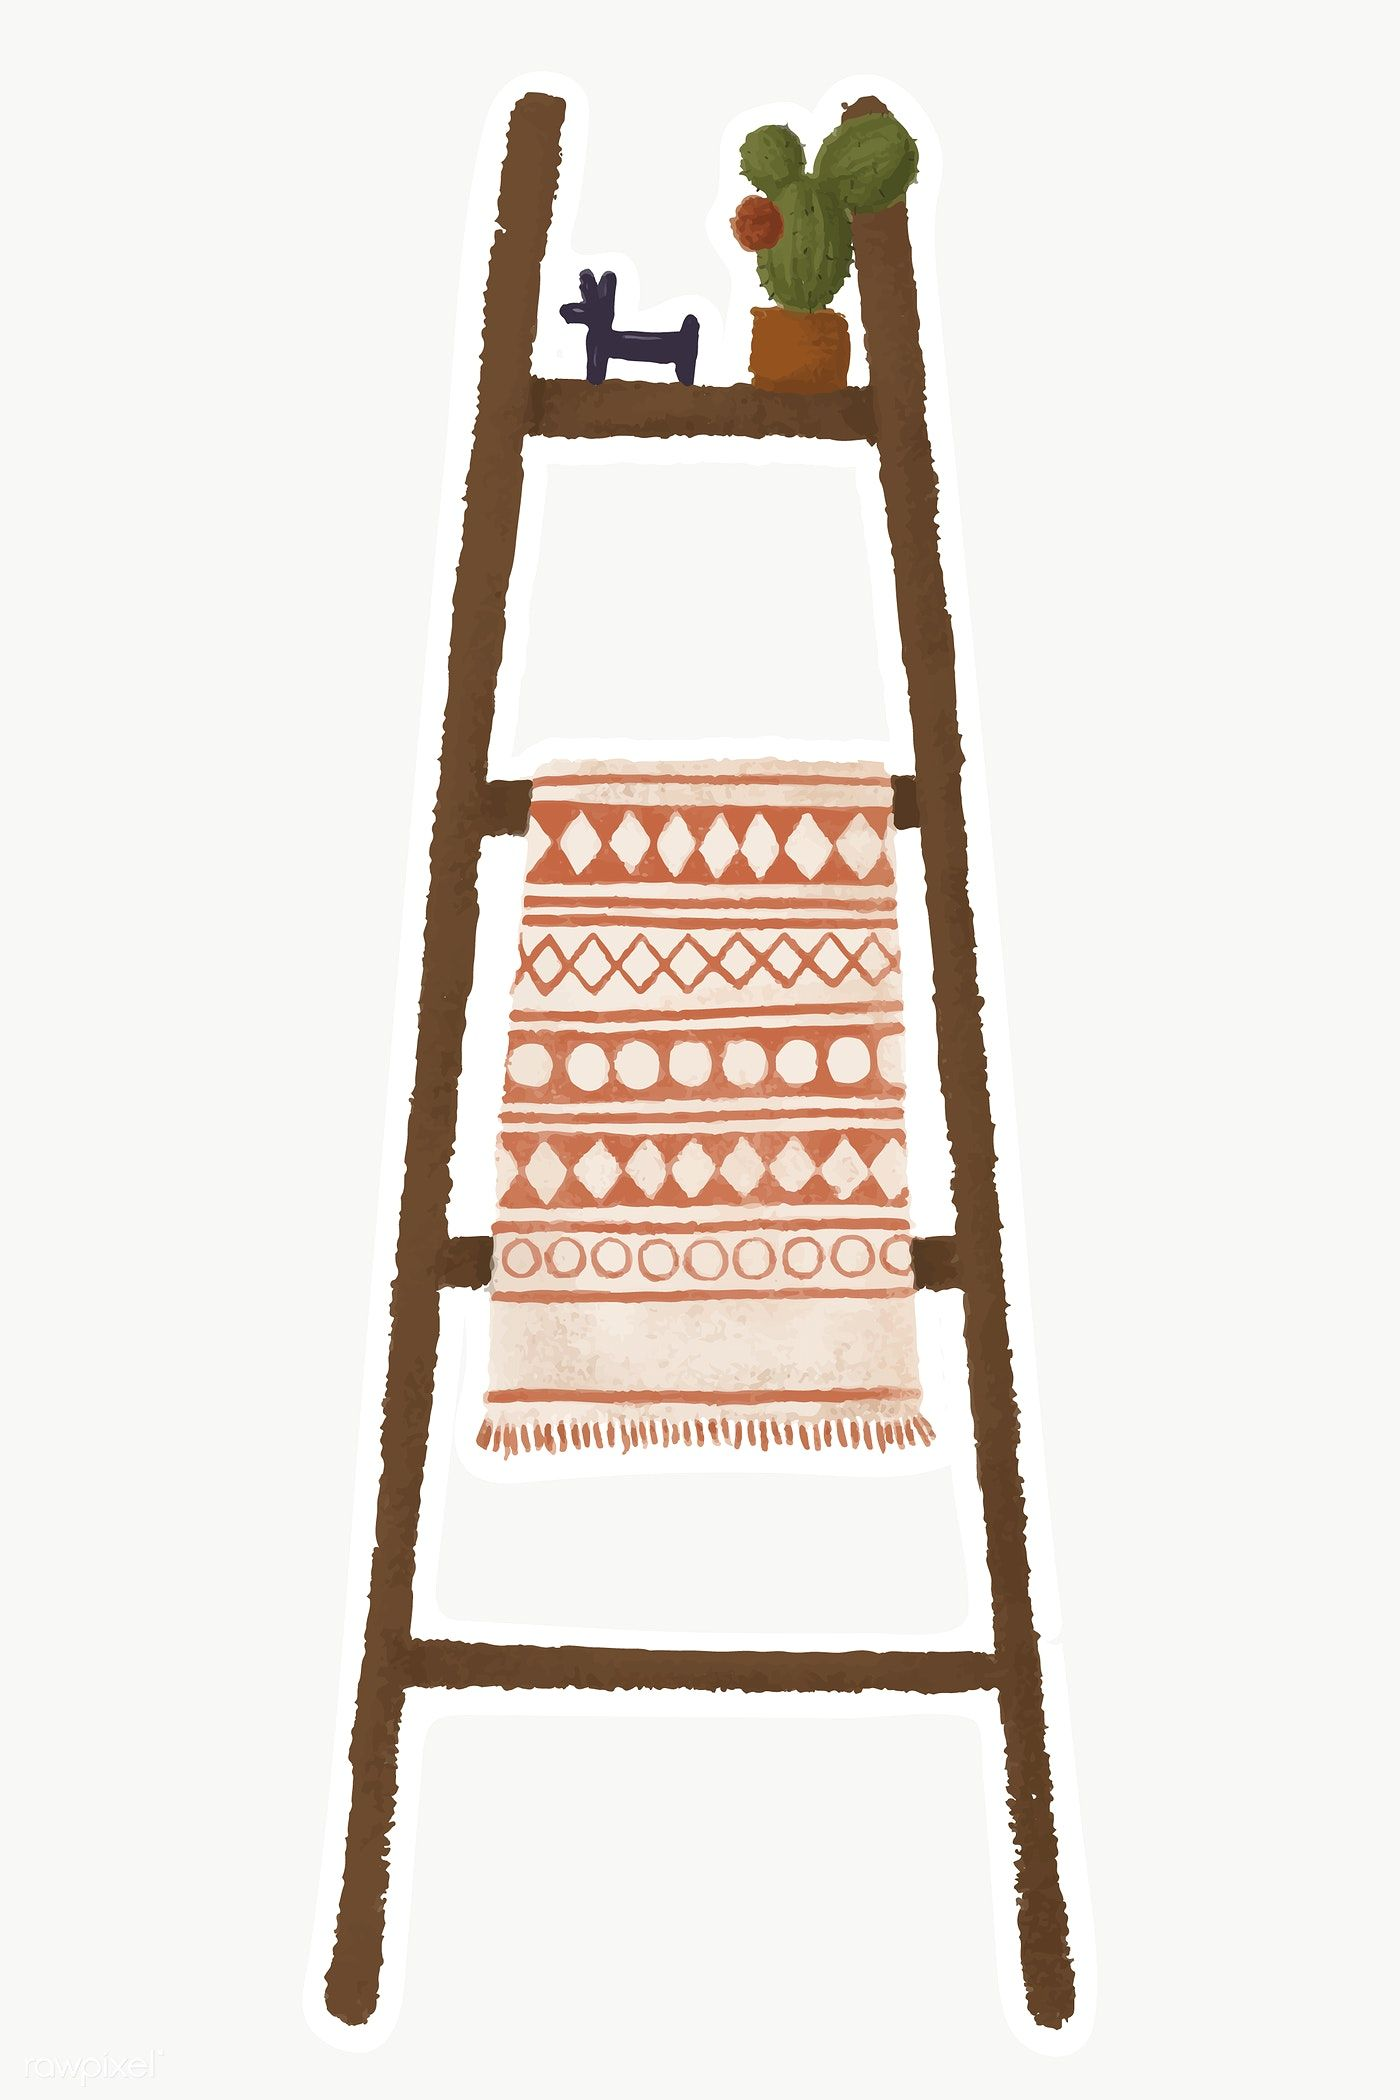 Download Premium Png Of Ladder Shelf With Blanket And Potted Cactus Ladder Plant Shelves Cactus Stickers